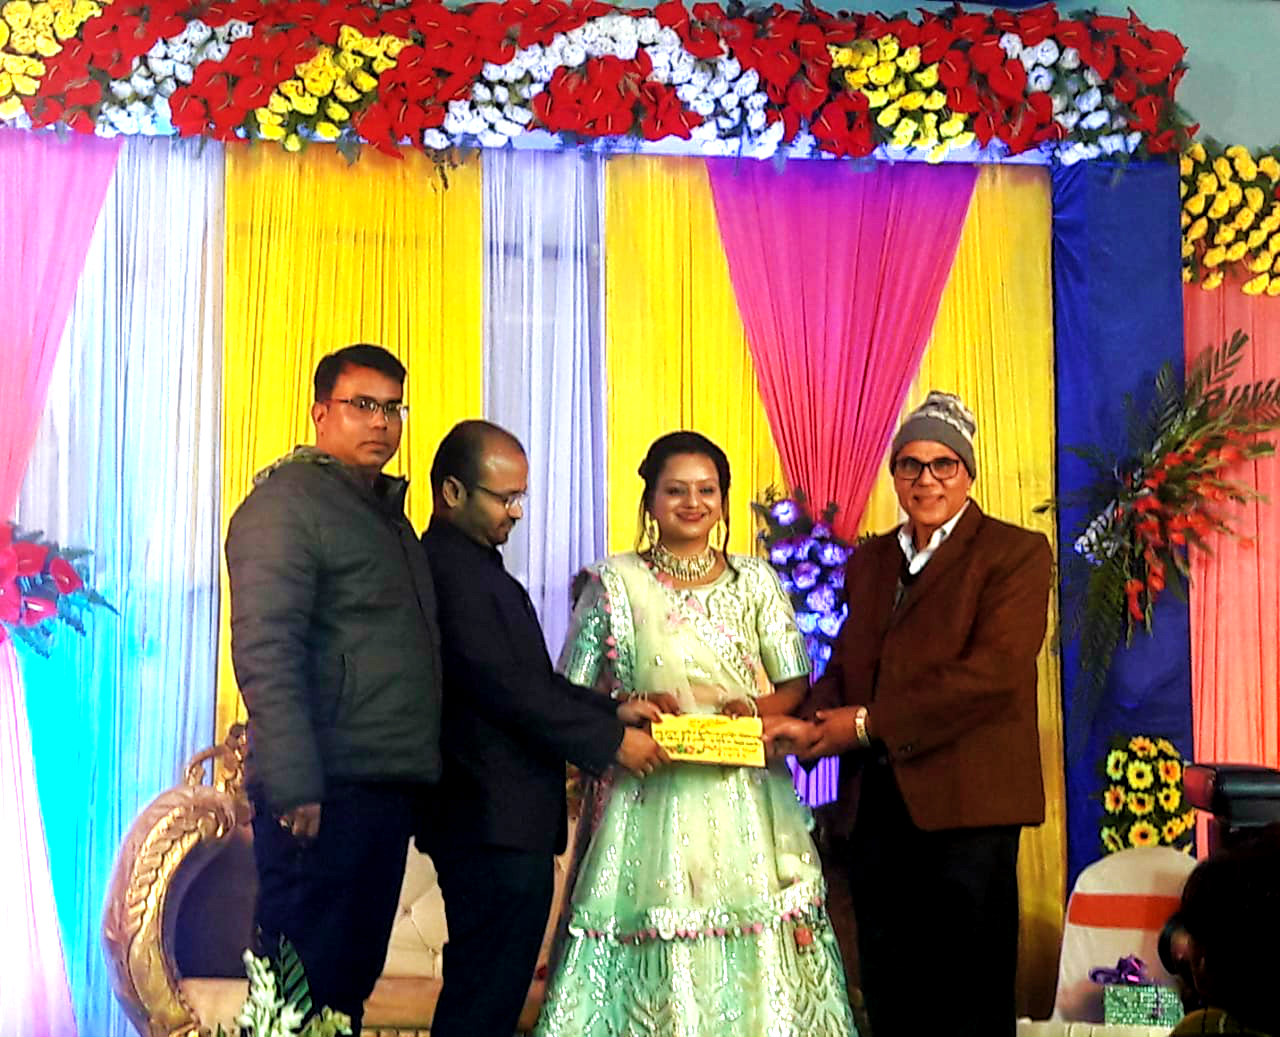 Dr.B.N.Yadav Madhepuri & Dr.Barun Kumar pouring blessings to the newly married couple  Er.Shaket & Er.Girish at the campus of Holly Cross School, Madhepura.